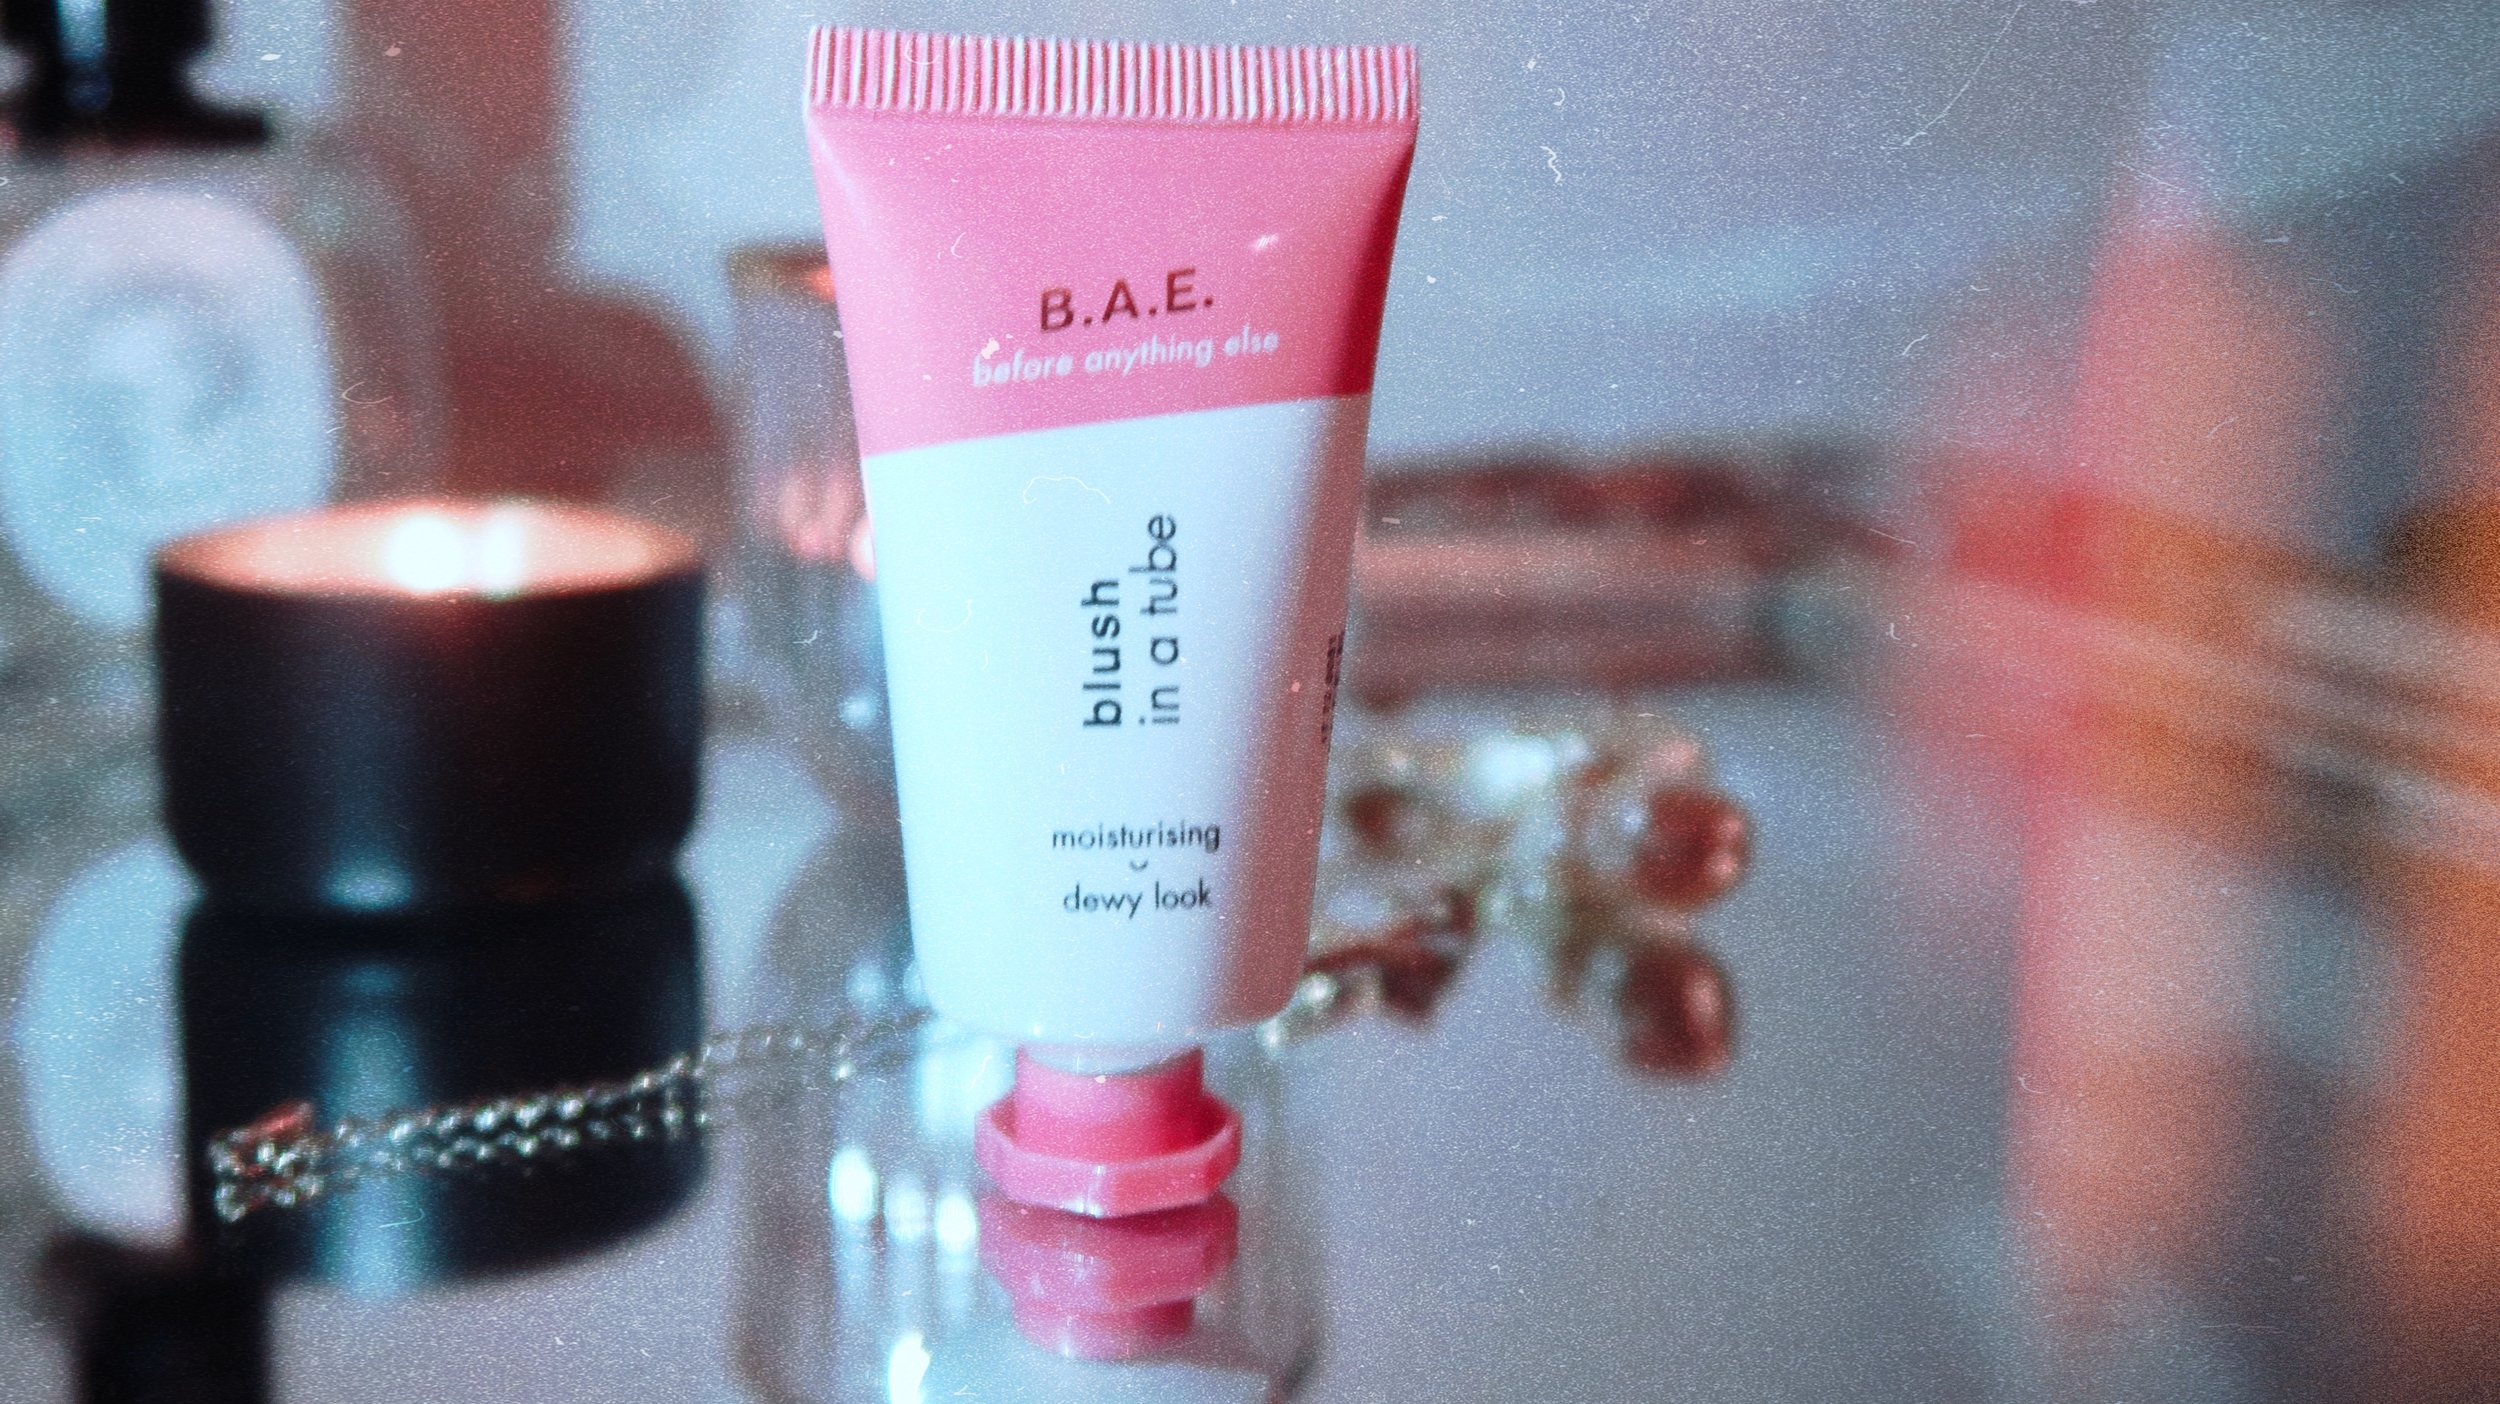 B.A.E. Blush in a tube - Product description: A moisturizing, dewy look and dermatologically tested.